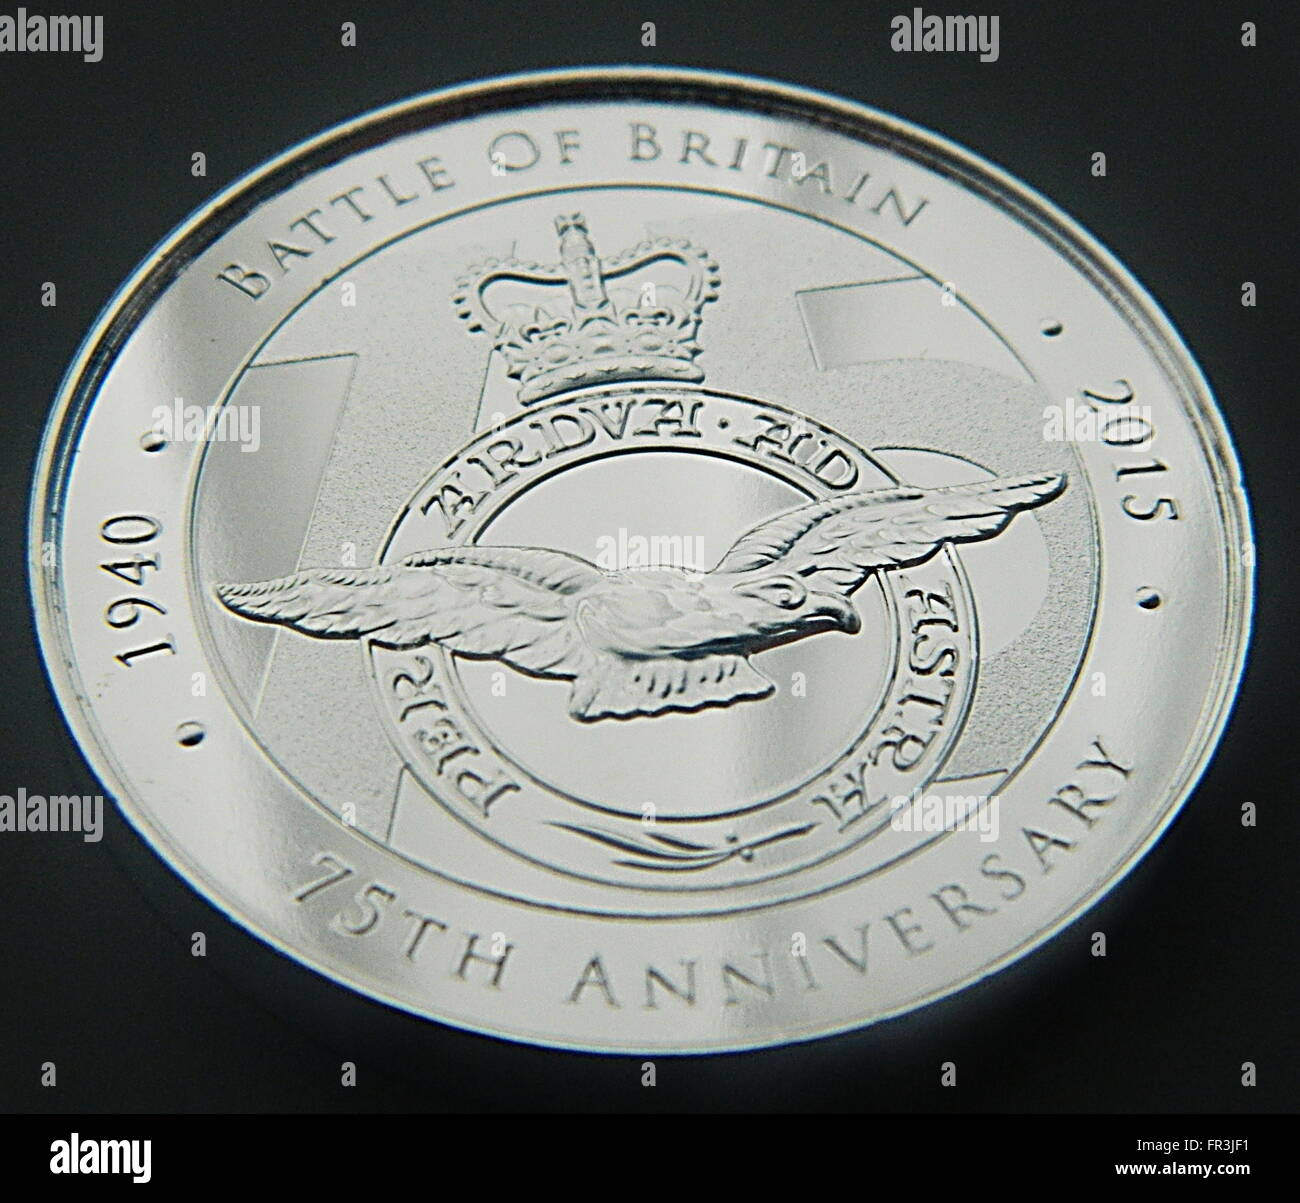 Battle Of Britain 75th Anniversary Commemorative Coin Stock Photo